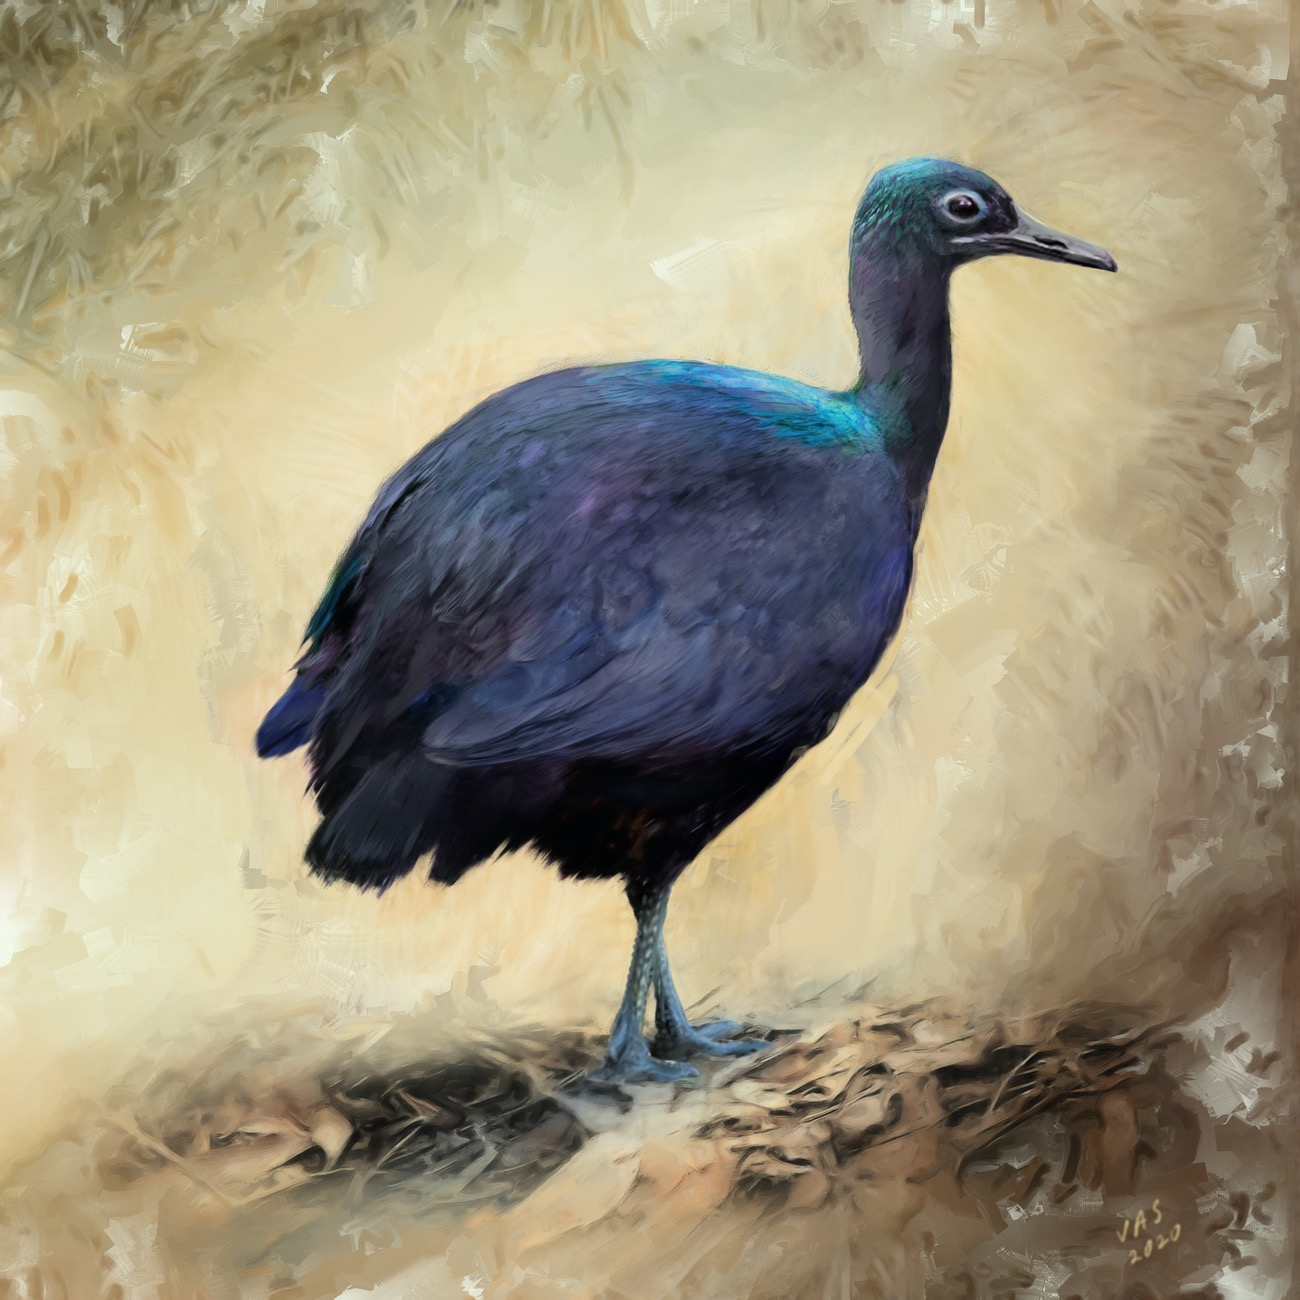 a painting of a colorful bird